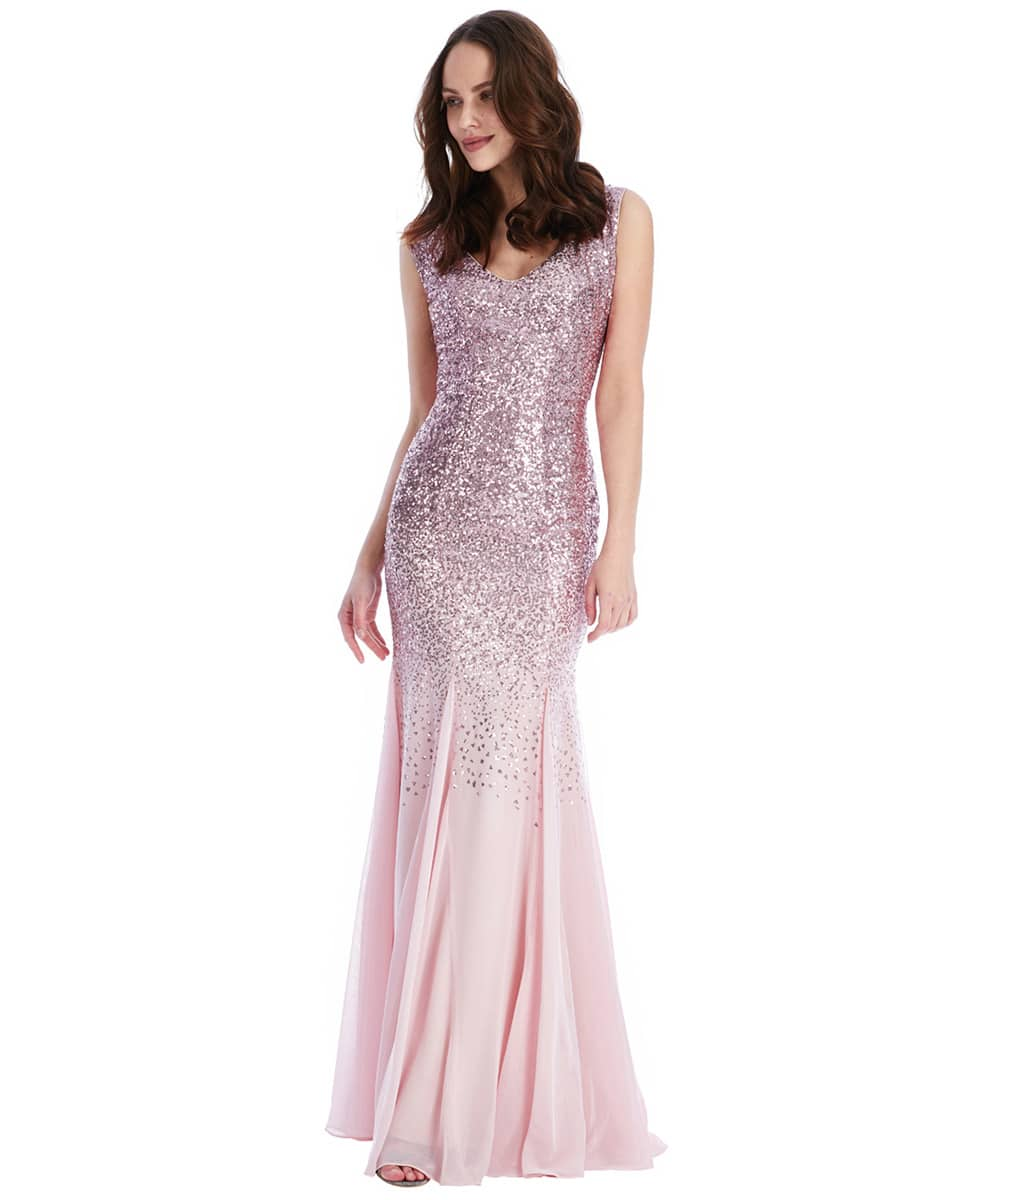 Alila Boutique Rose Gold Sequins Gown